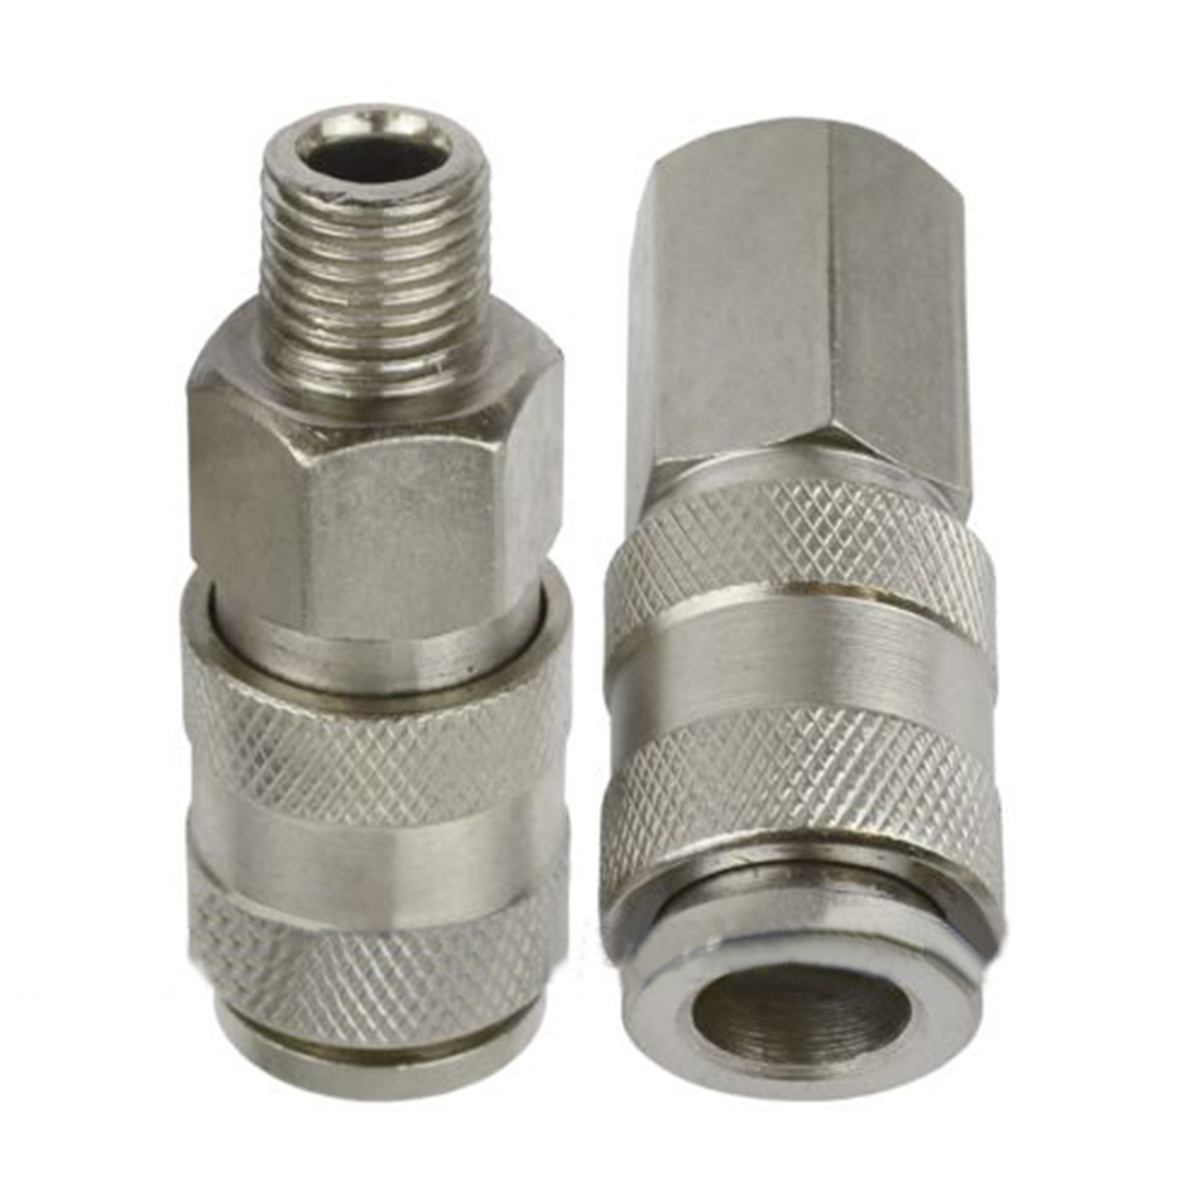 Adaptor Compressor Fittings Type 23 Airline Quick Release Coupler